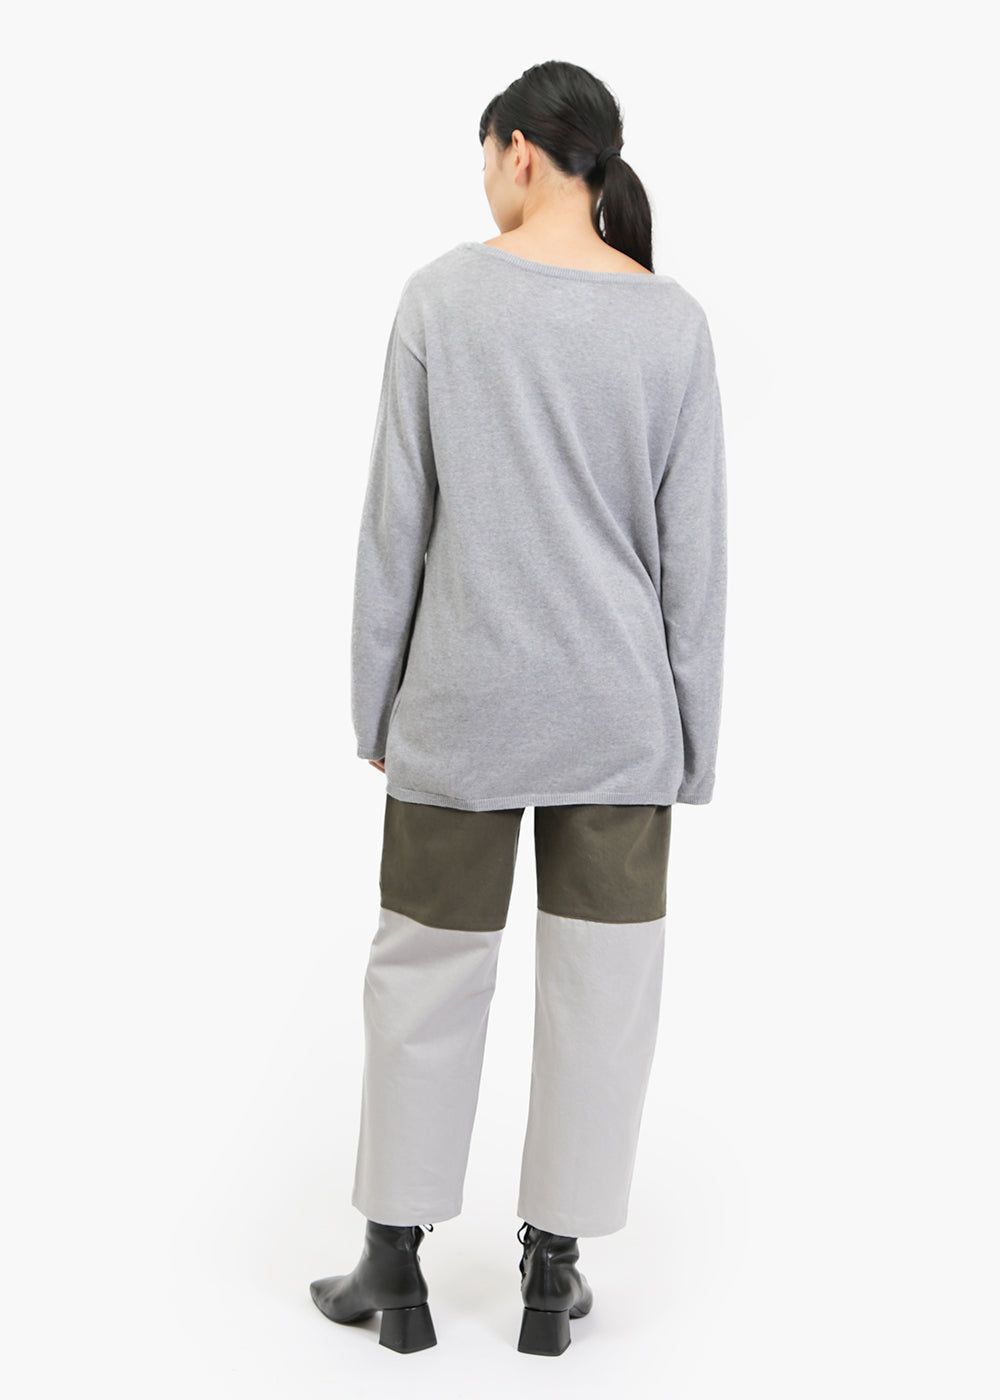 Kowtow Light Lakeside Sweater — Shop sustainable fashion and slow fashion at New Classics Studios